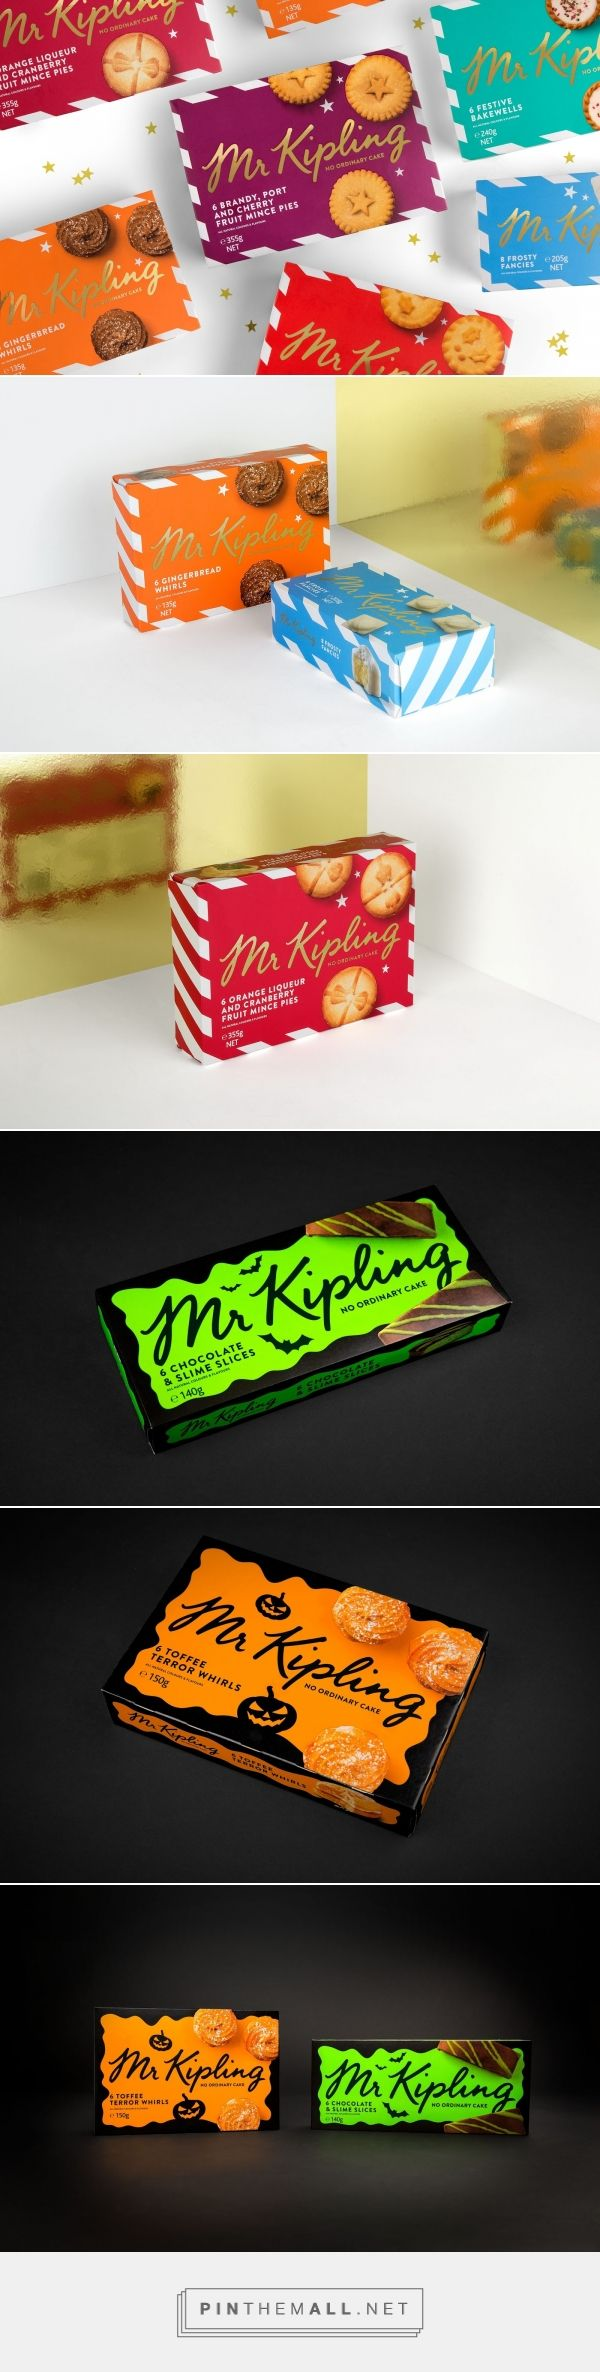 Mr Kipling Australia New Seasonal Range packaging design by Robot Food - http://www.packagingoftheworld.com/2017/10/mr-kipling-australia-new-seasonal-range.html